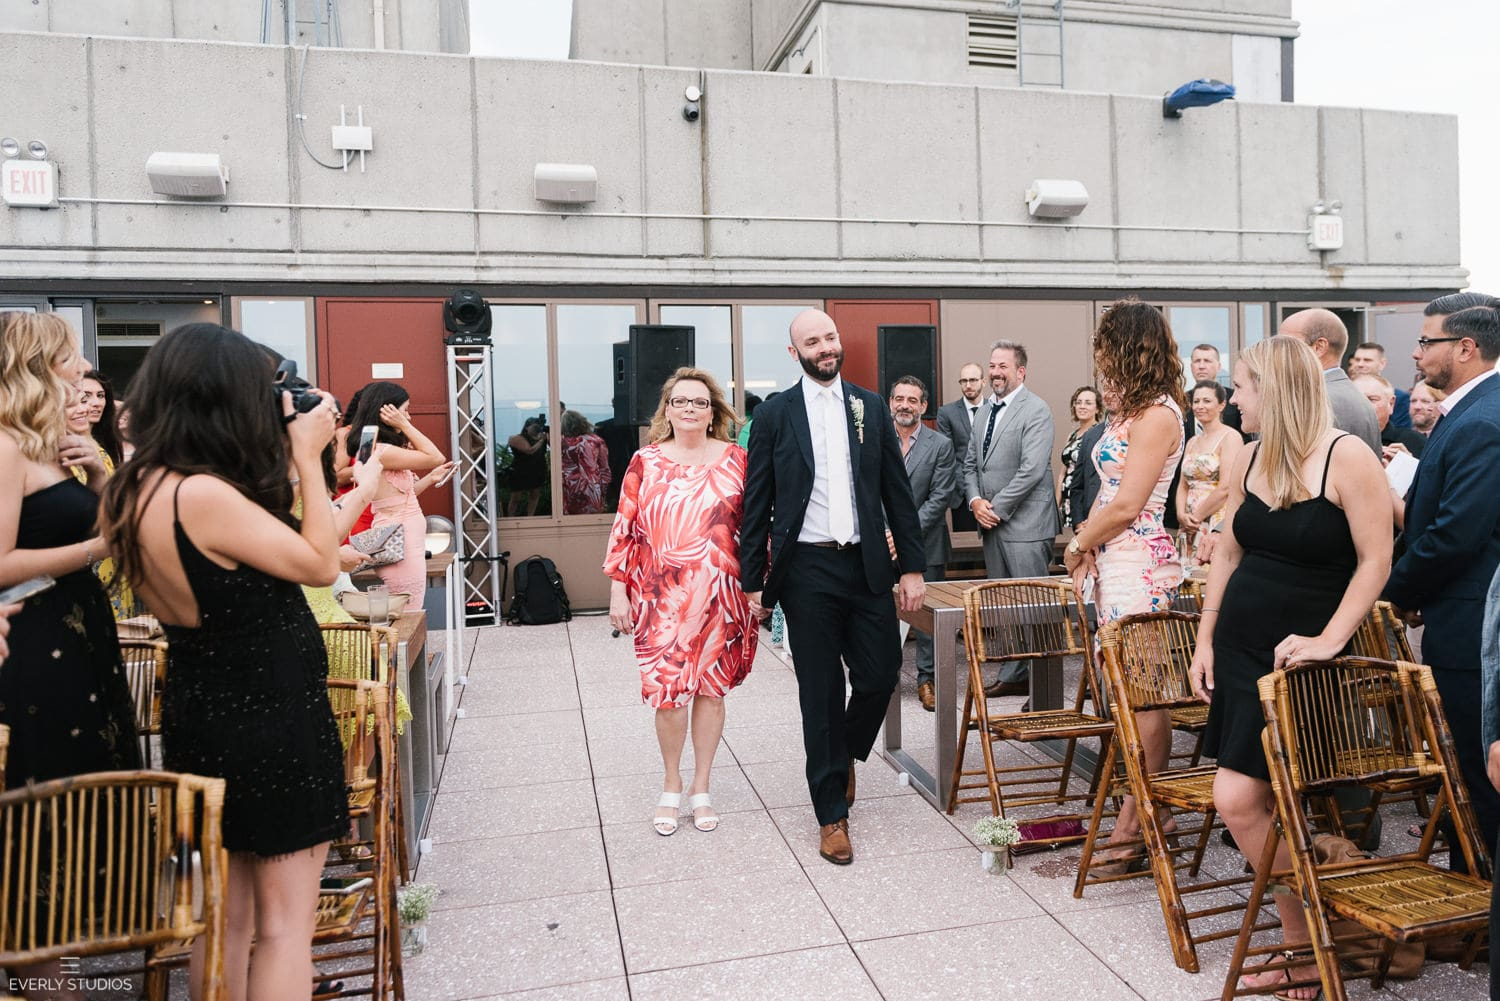 Rooftop wedding NYC in Brooklyn with views of Manhattan. Wedding photos by NYC wedding photographer Everly Studios, www.everlystudios.com